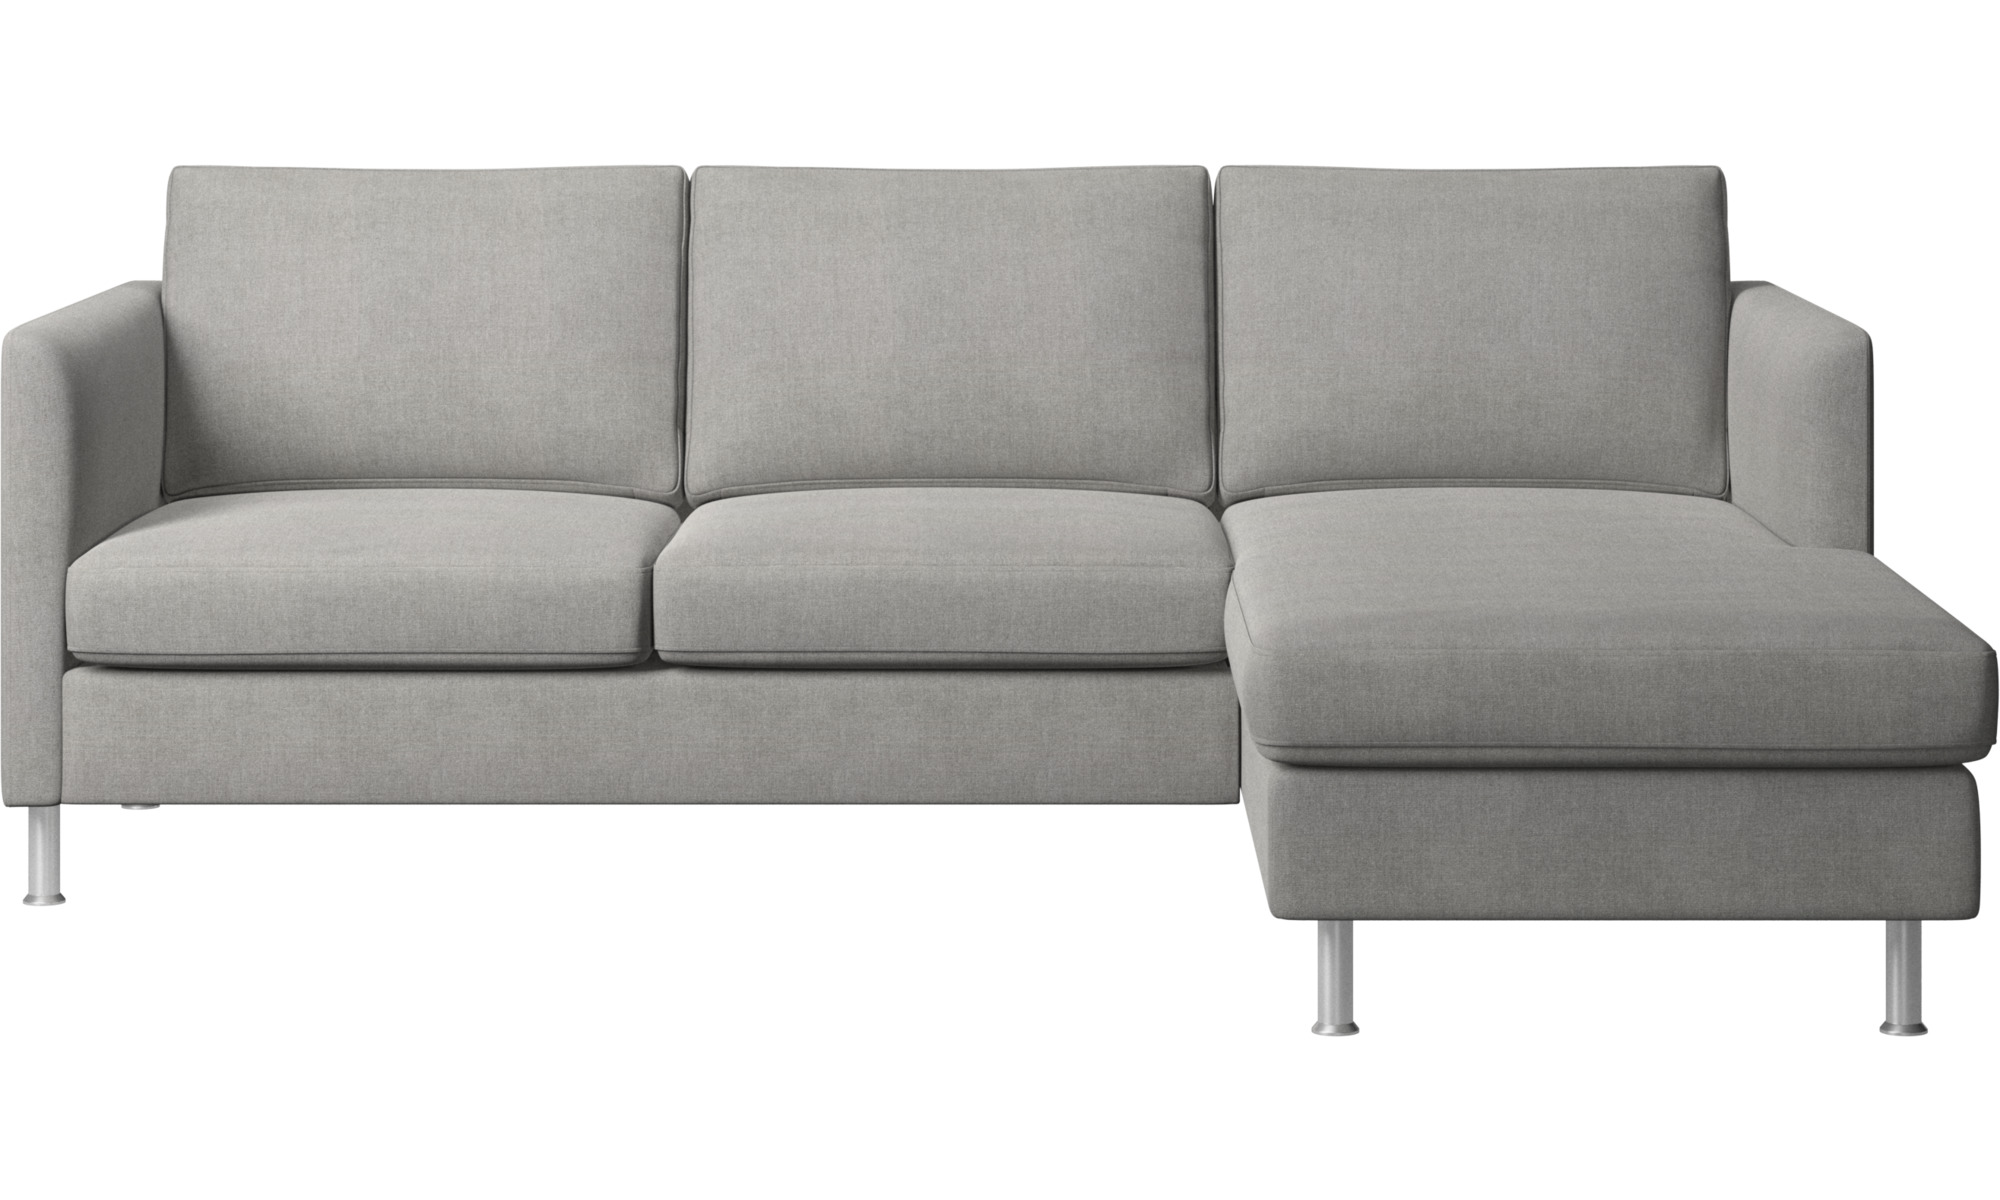 Chaise Lounge Sofas Indivi Sofa With